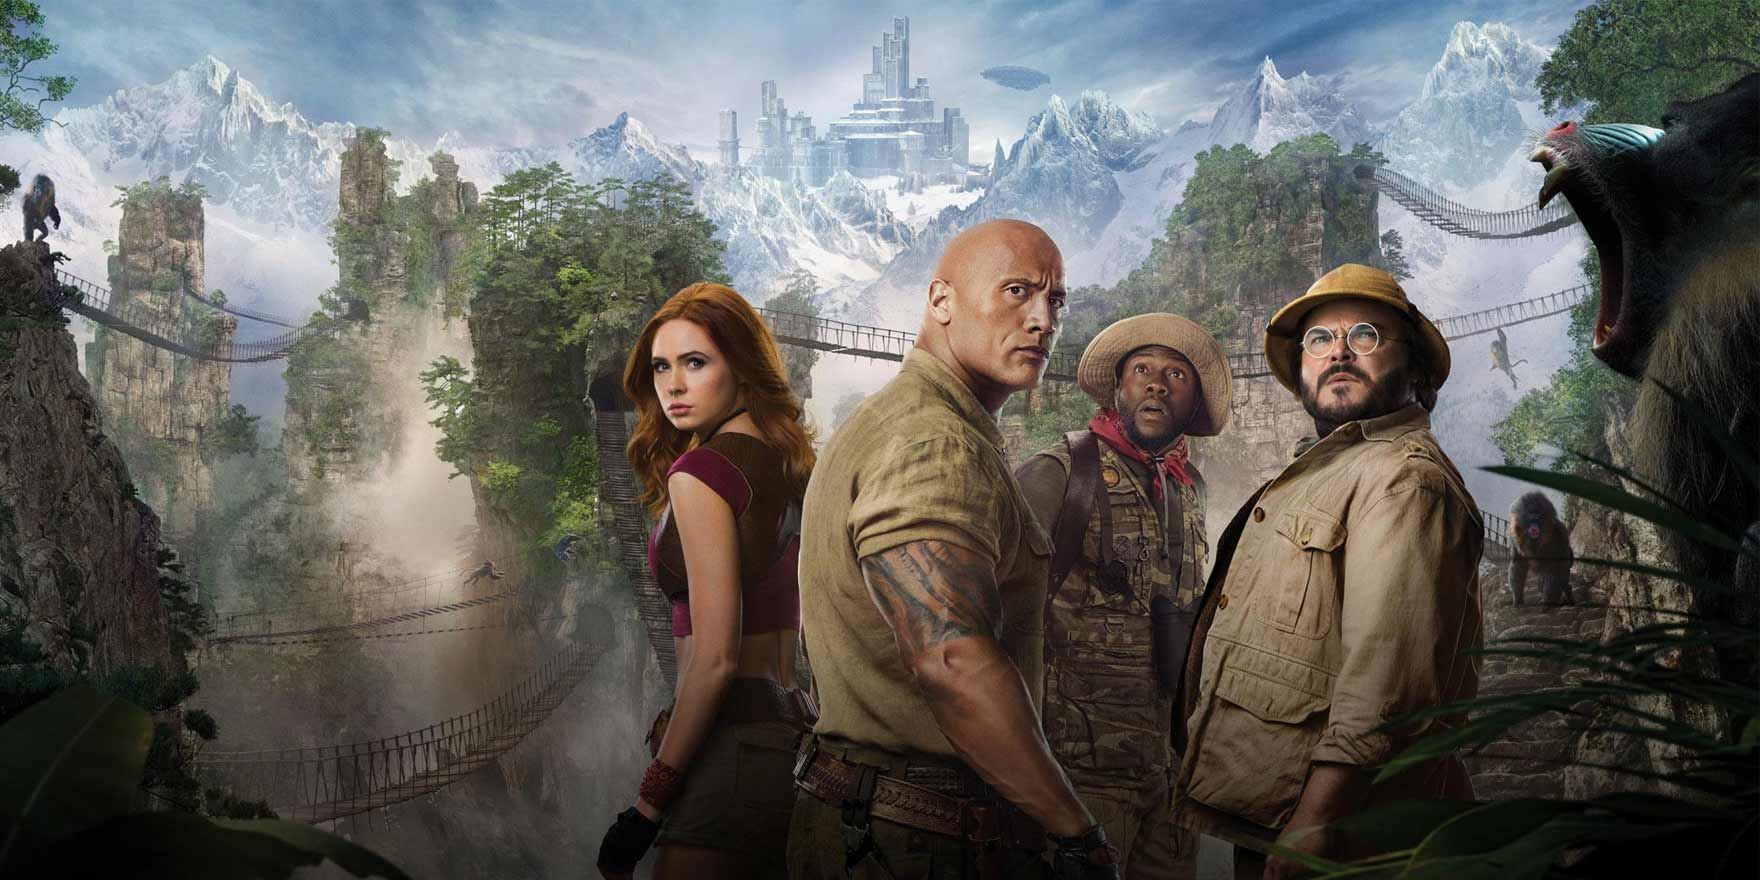 Jumanji: The Next Level - Header Image